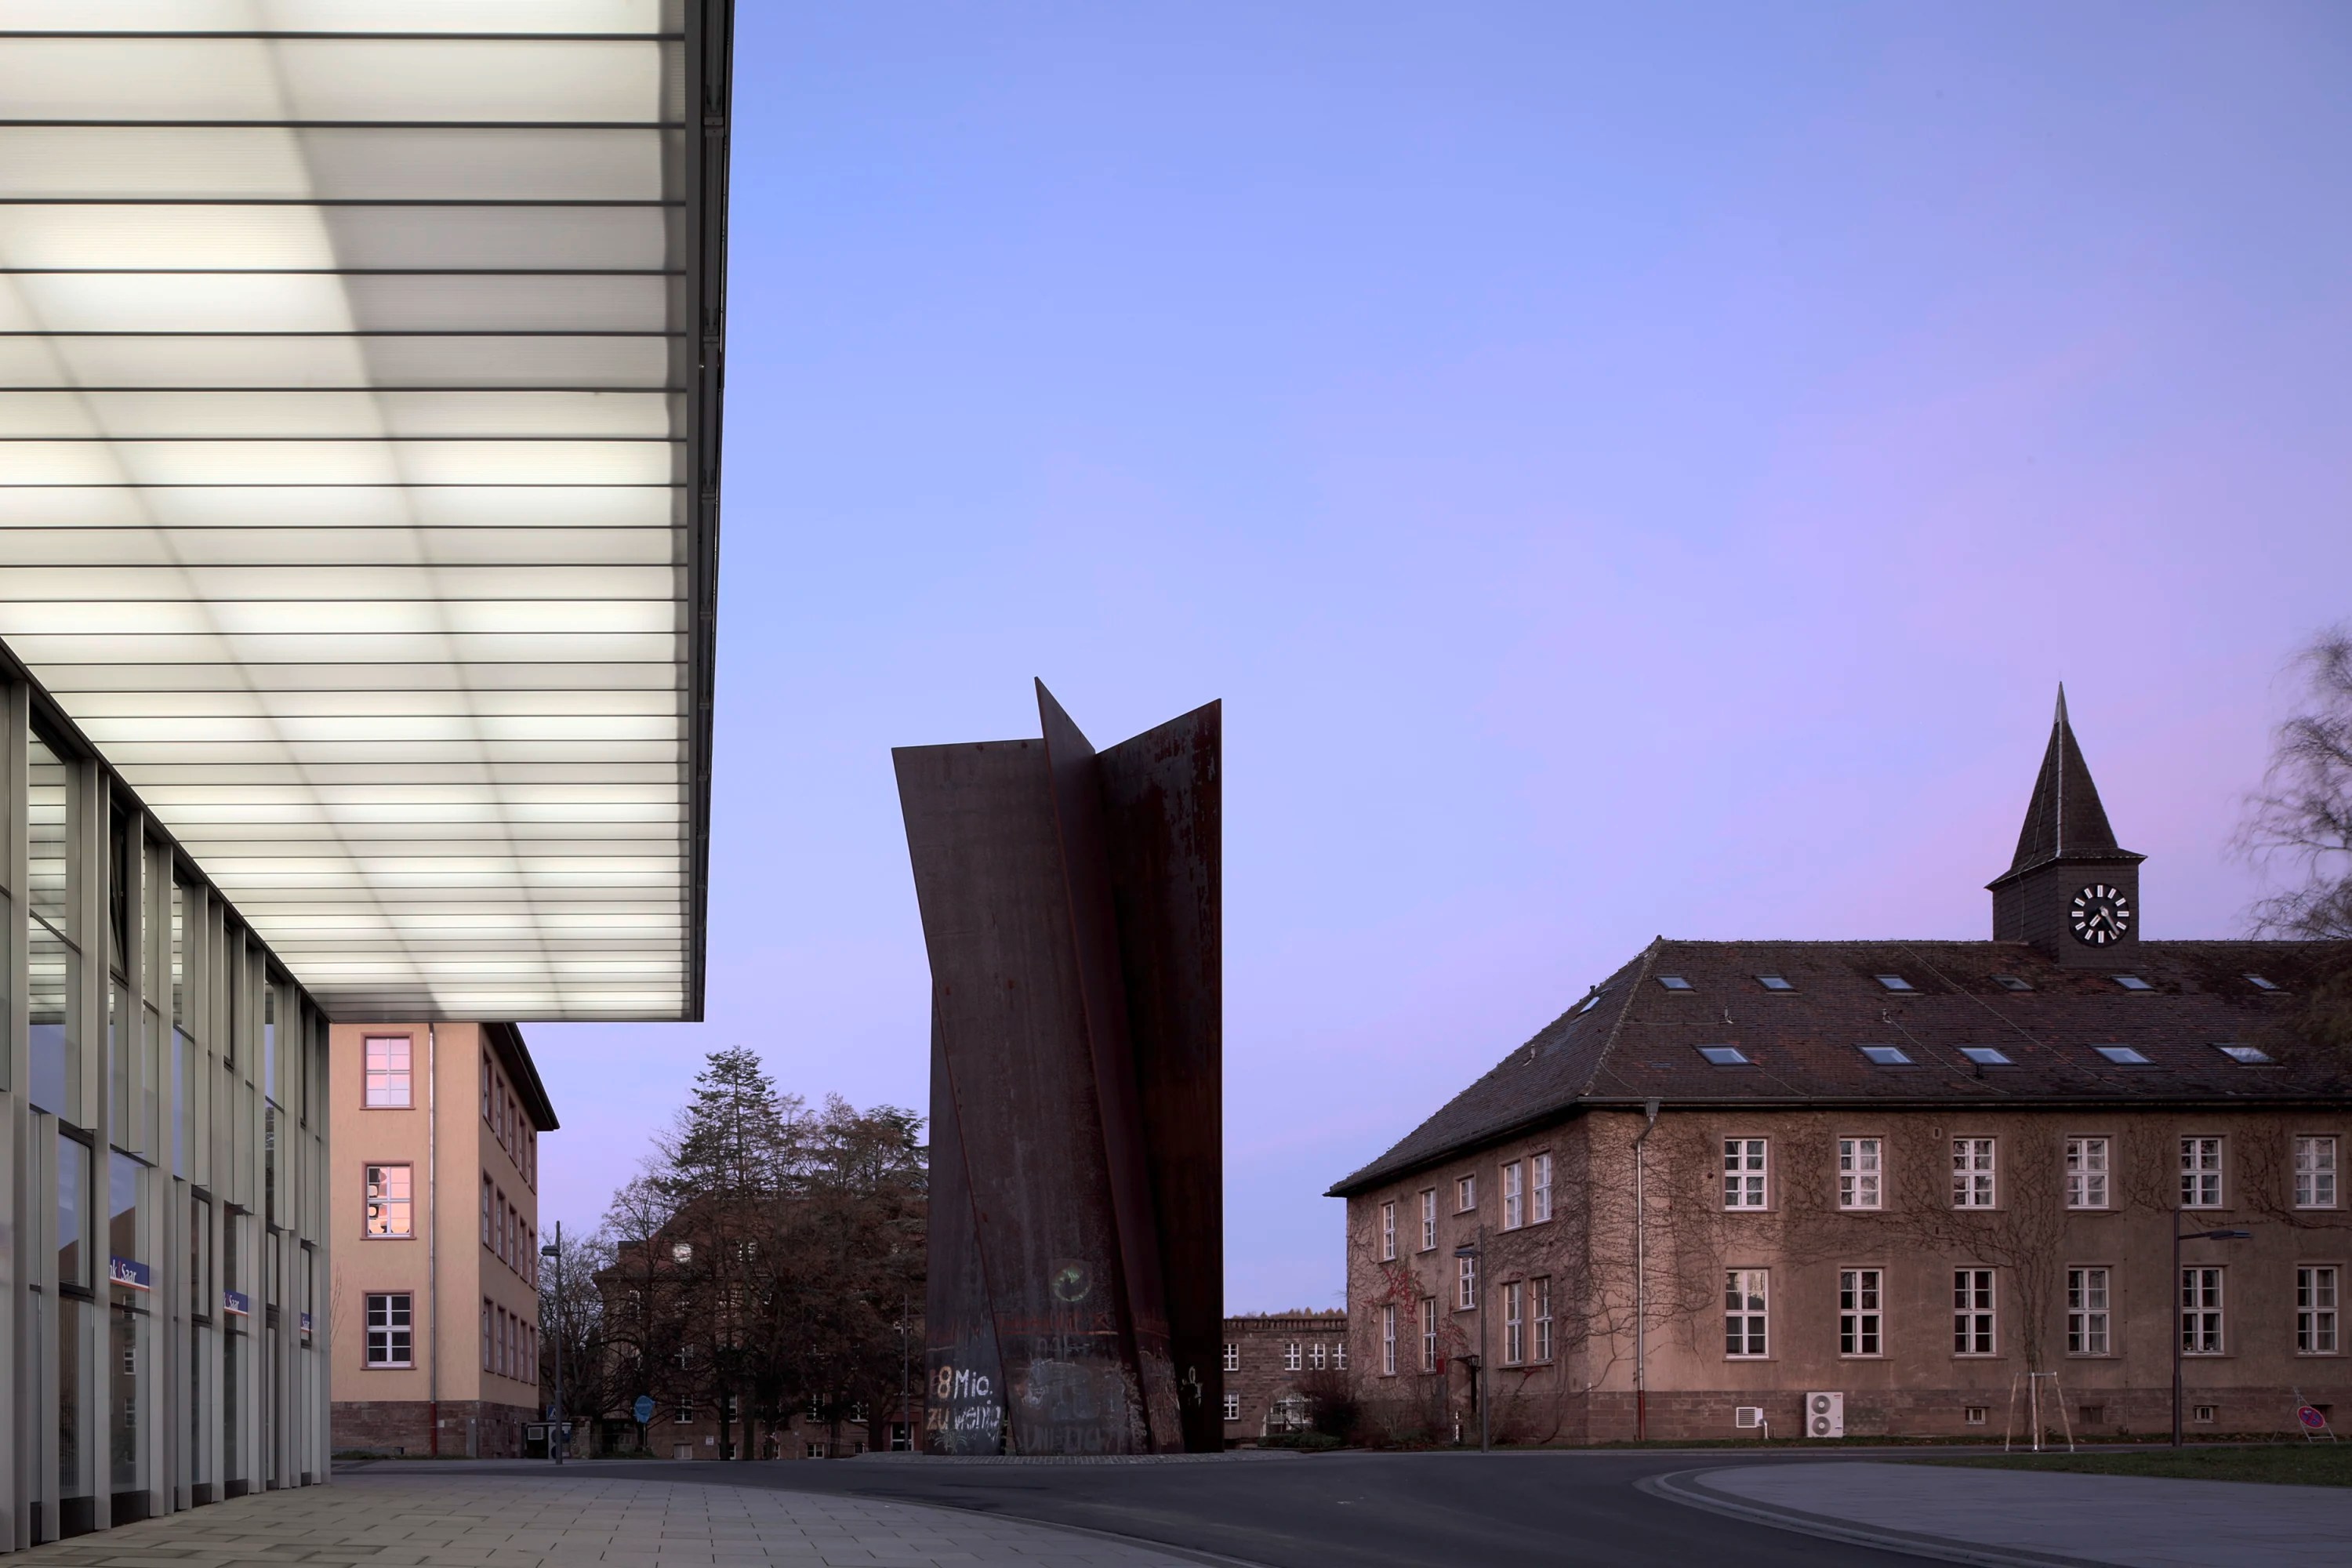 Architekt Saarland Veauthier Architekten · Campus Center Saarland University · Divisare